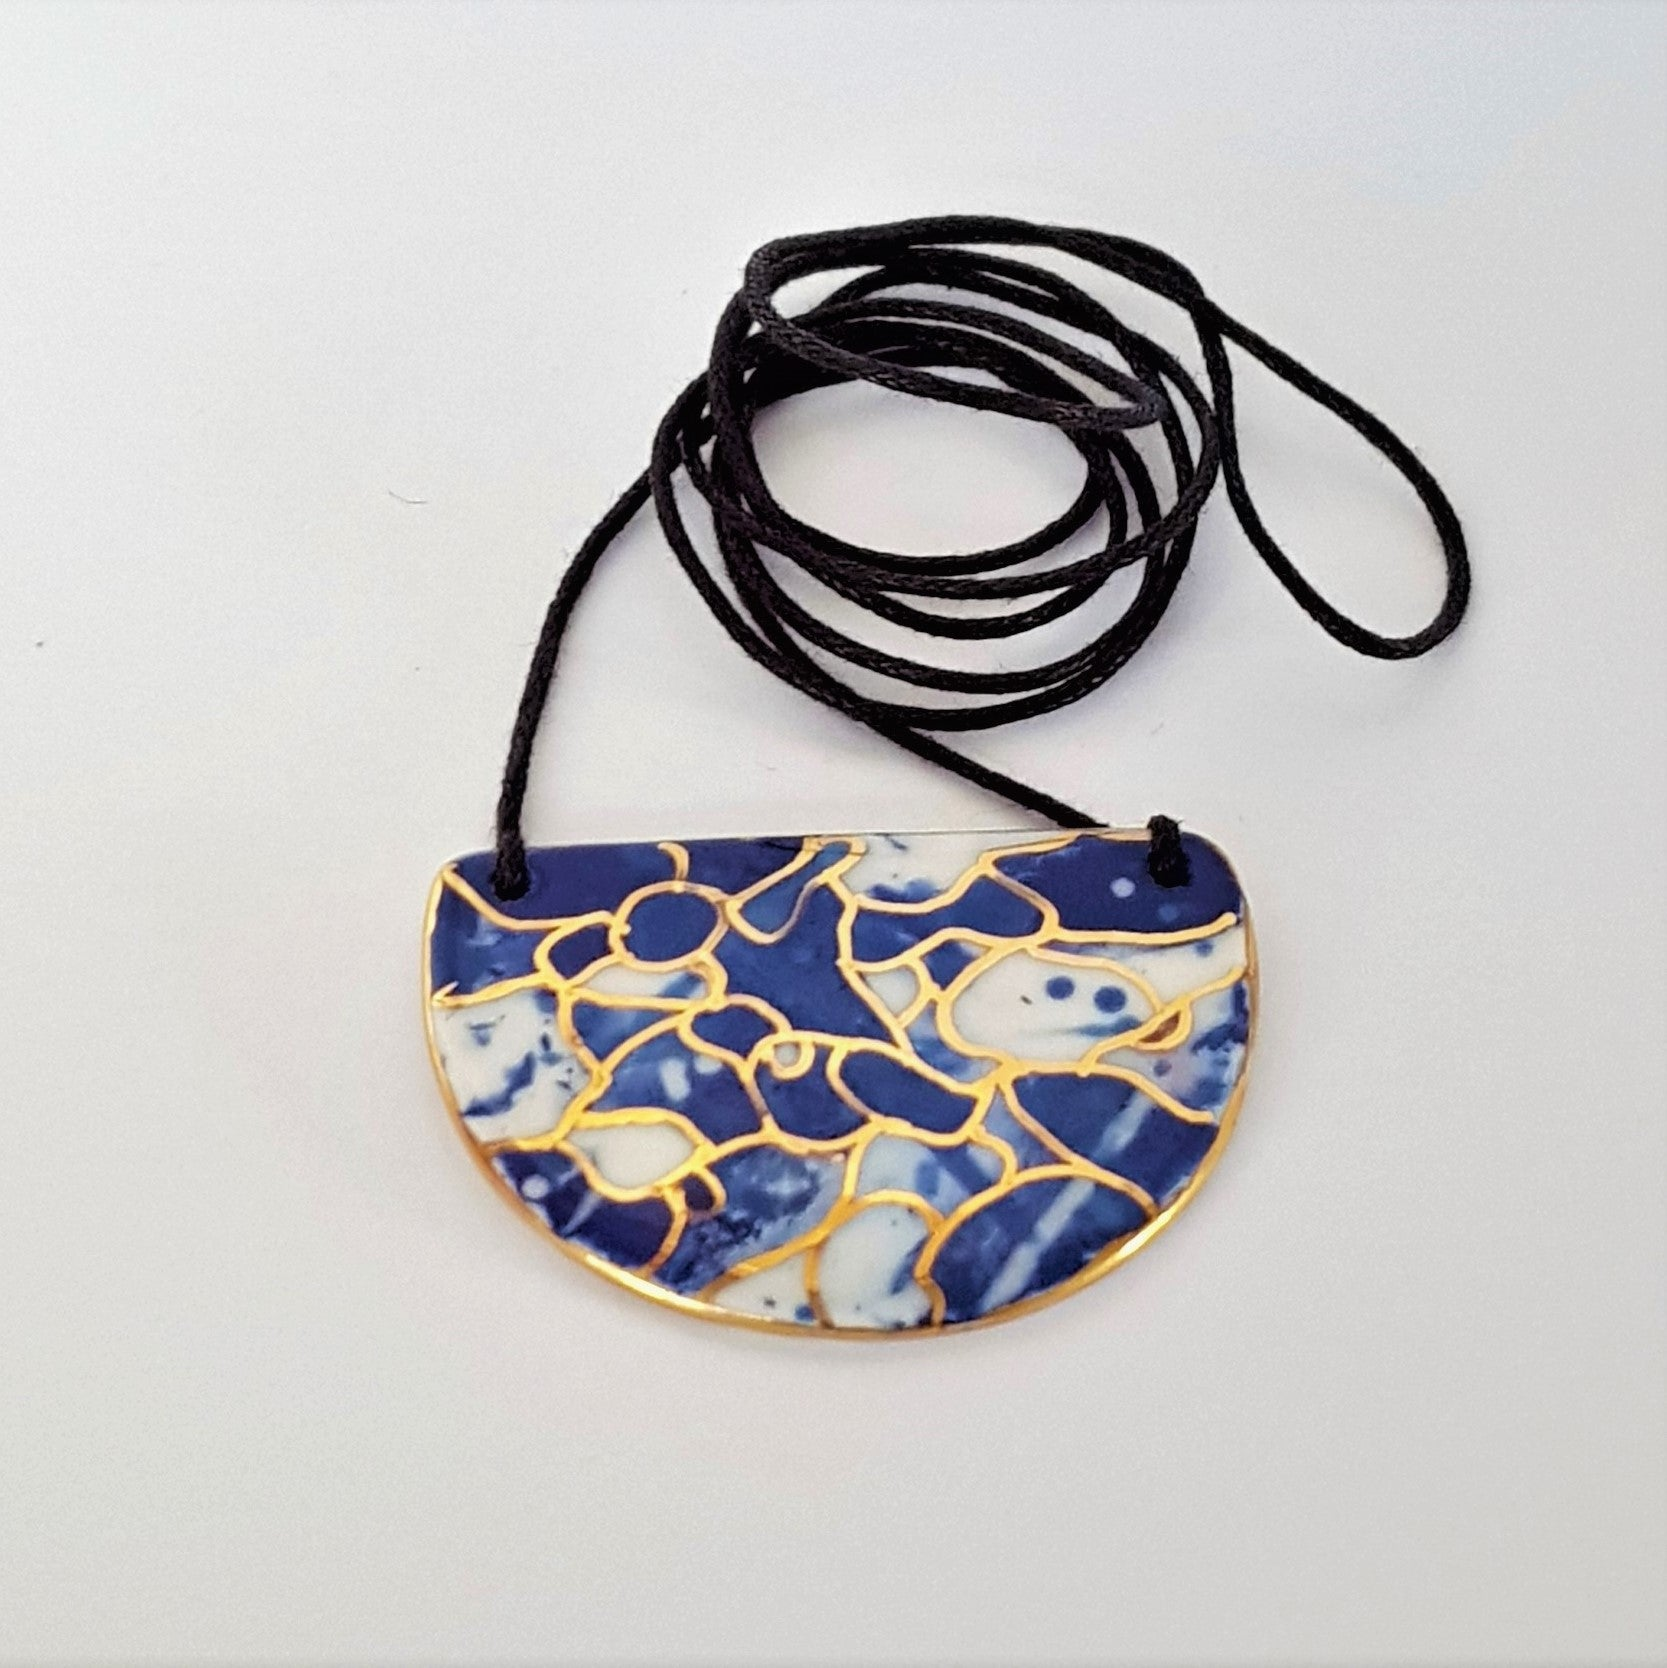 Small half moon pendant indigo tones with gold linework